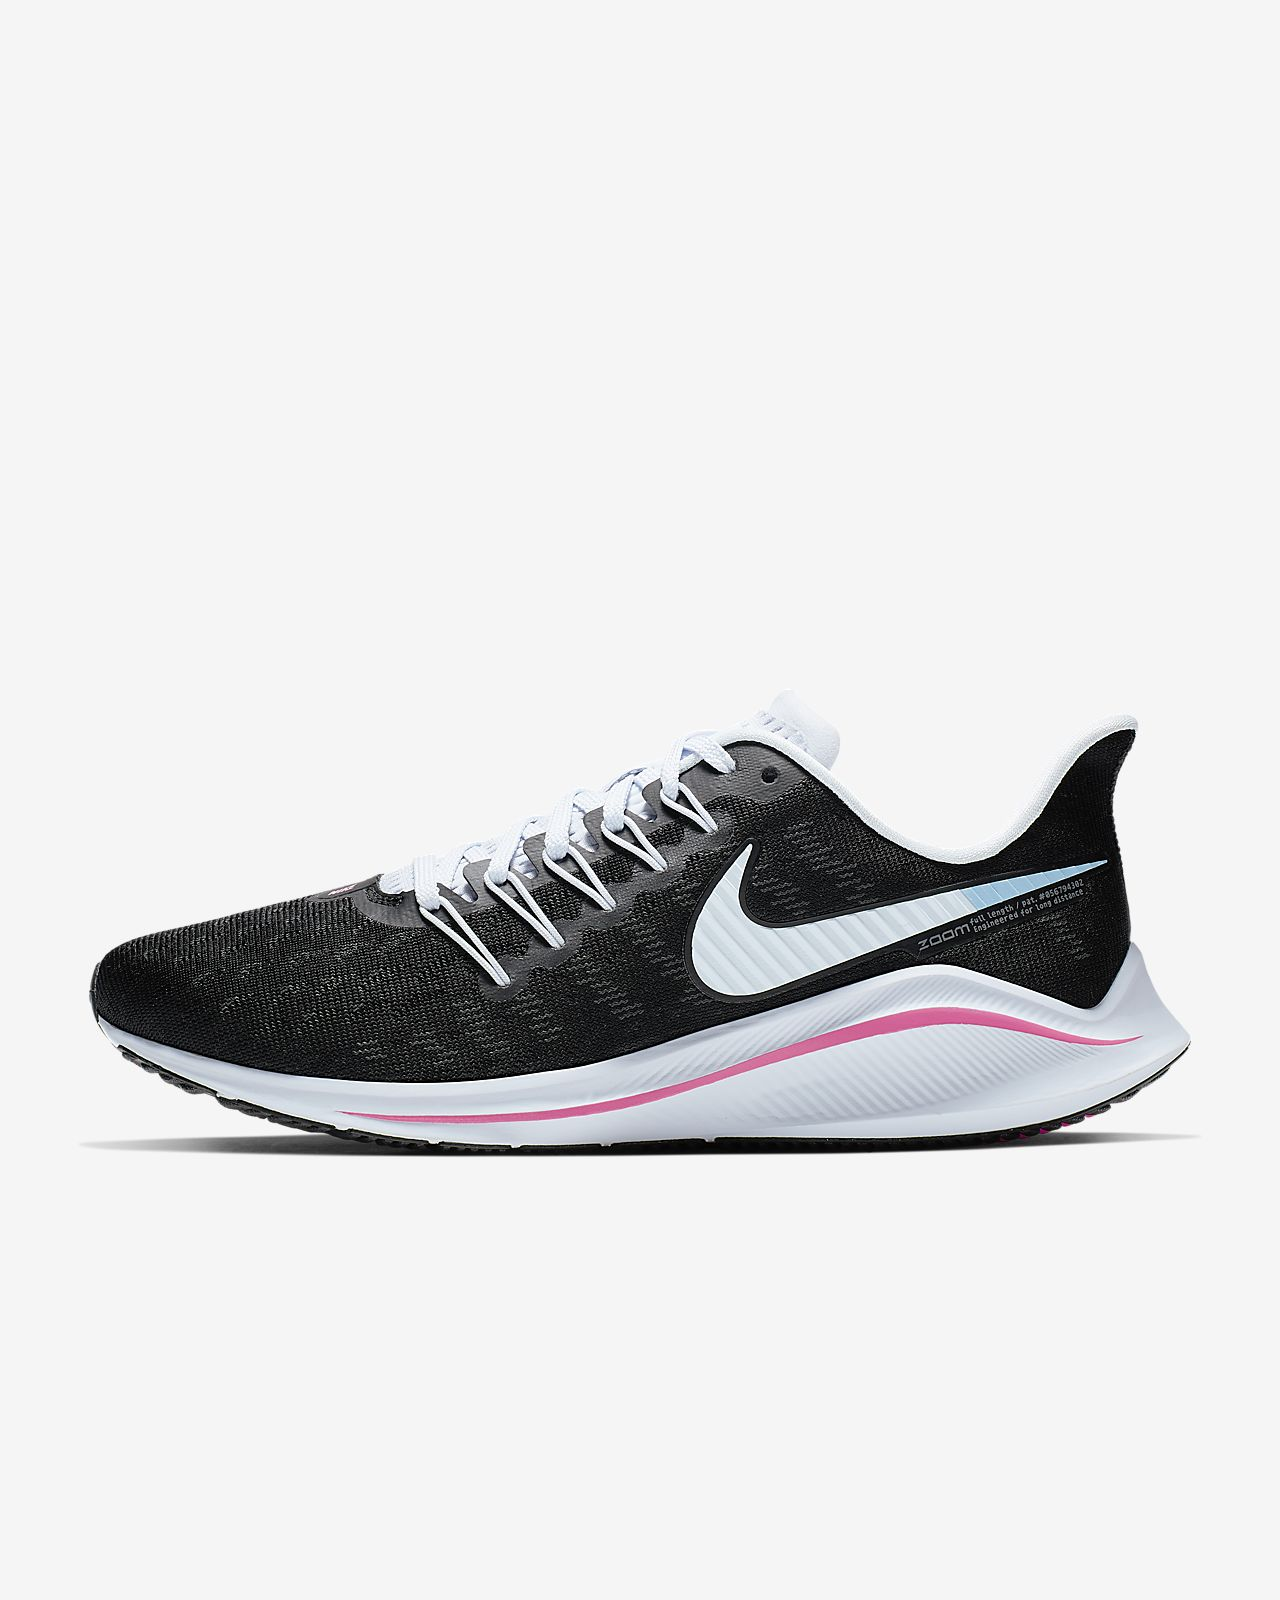 97f52ef30f8f Nike Air Zoom Vomero 14 Women s Running Shoe. Nike.com